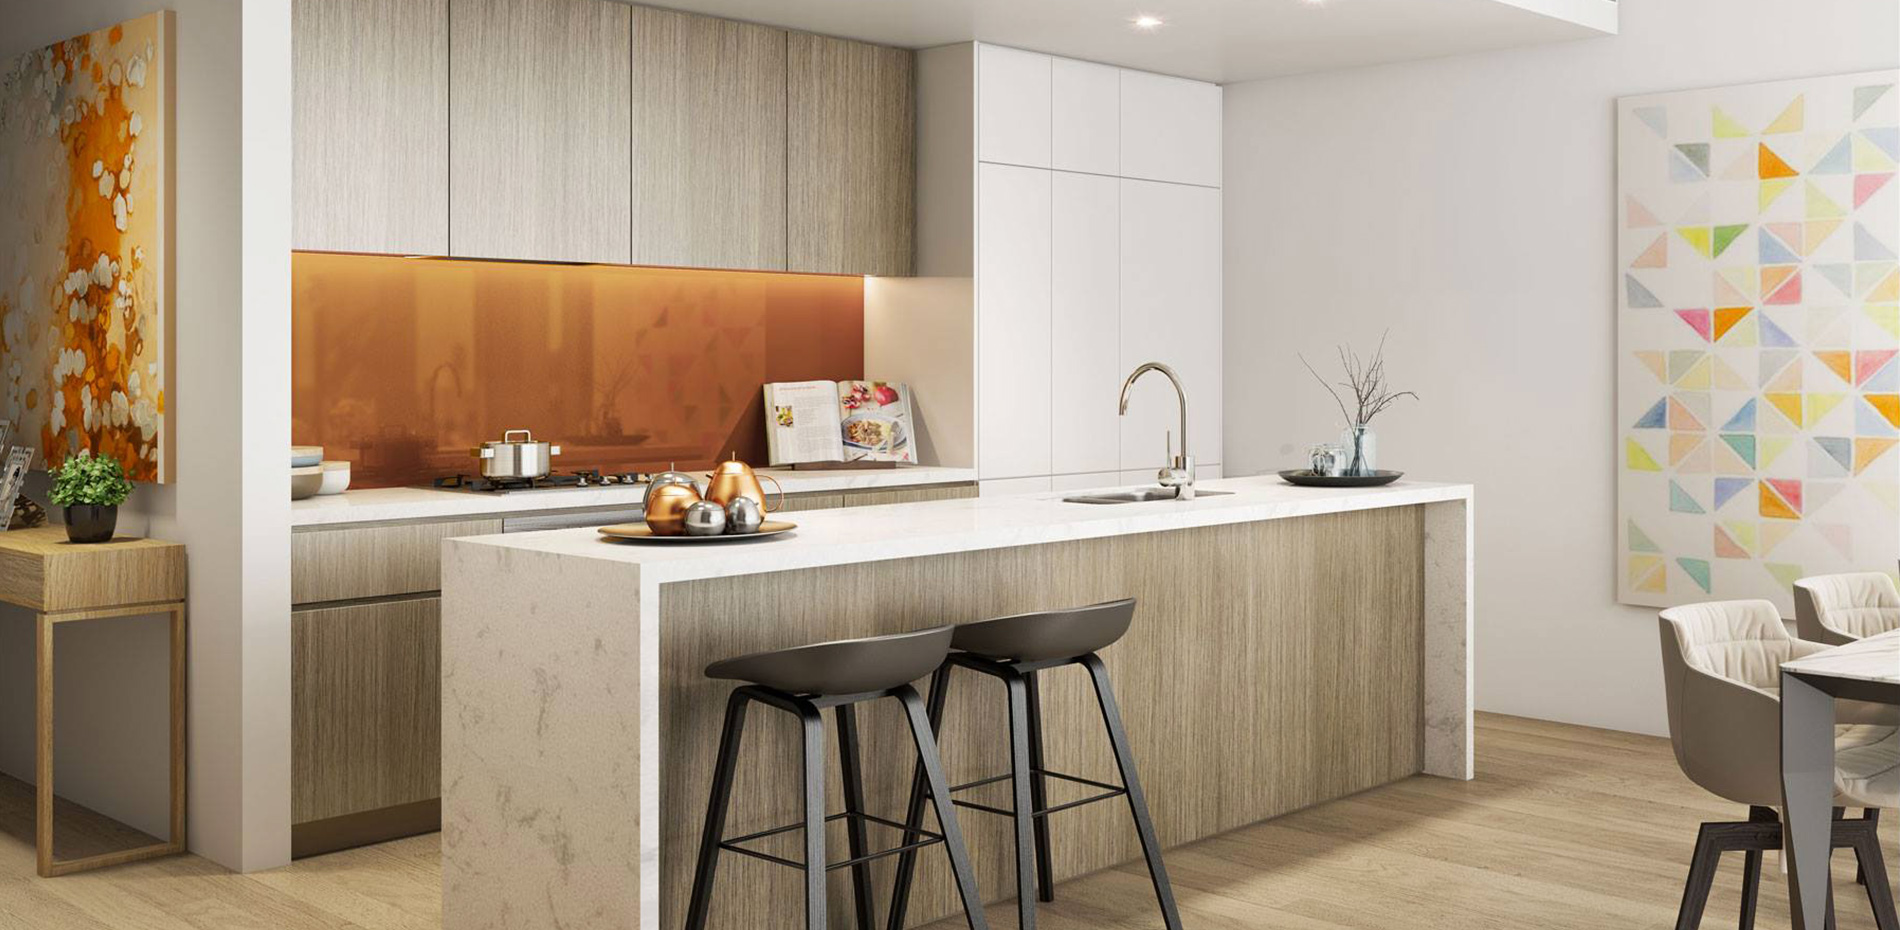 Bathroom Renovations Penrith kitchen renovations in sydney, penrith, blue mountains | kitchen